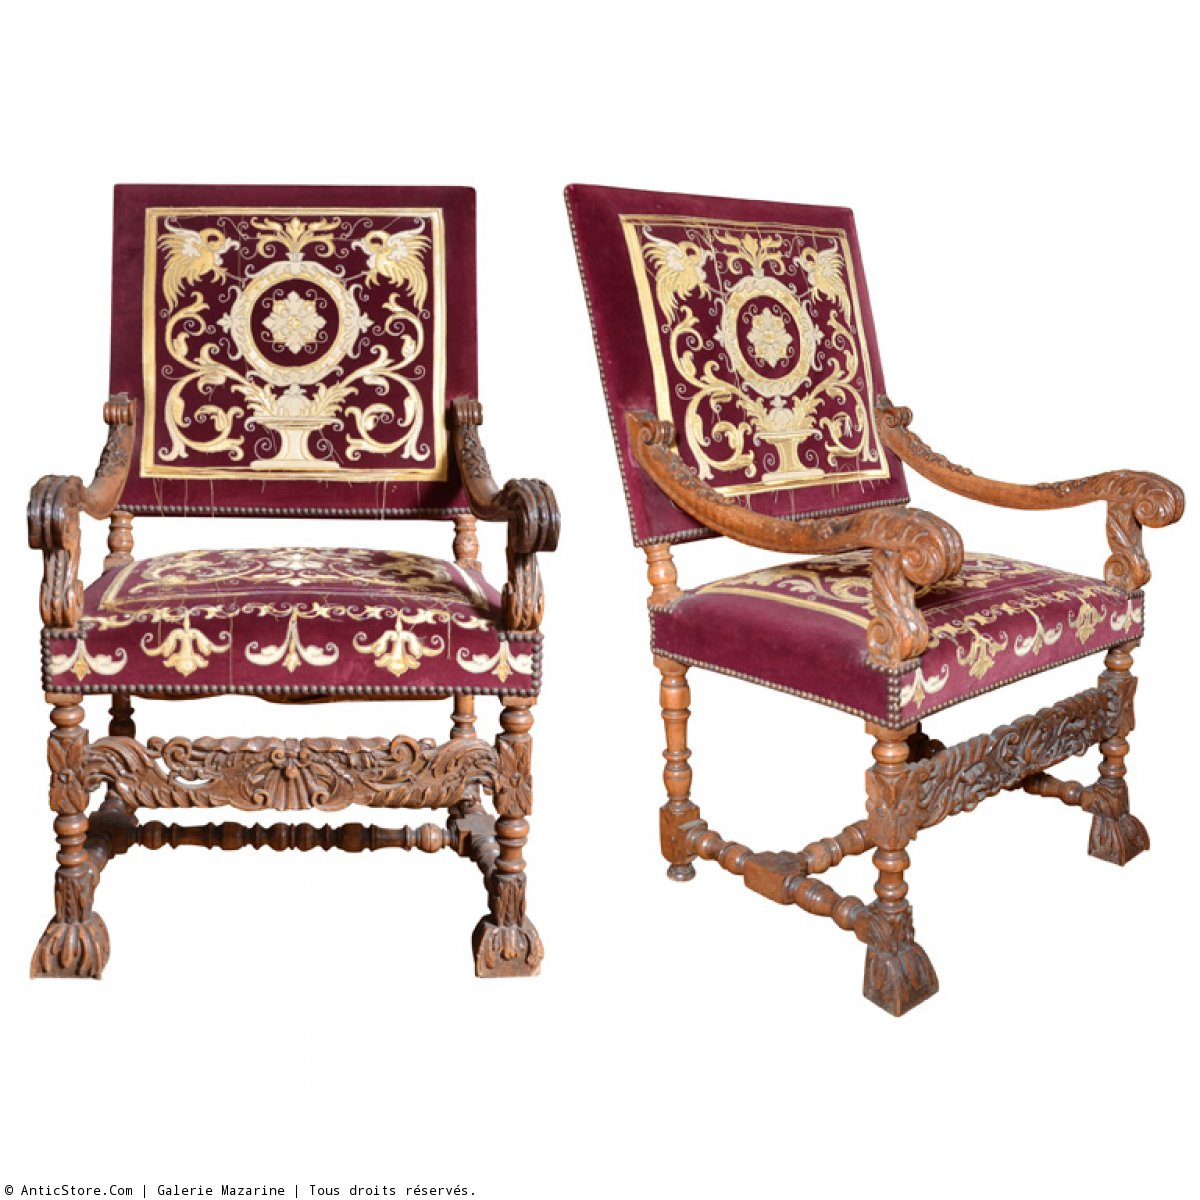 belle paire de grands fauteuils louis xiv xviie si cle. Black Bedroom Furniture Sets. Home Design Ideas